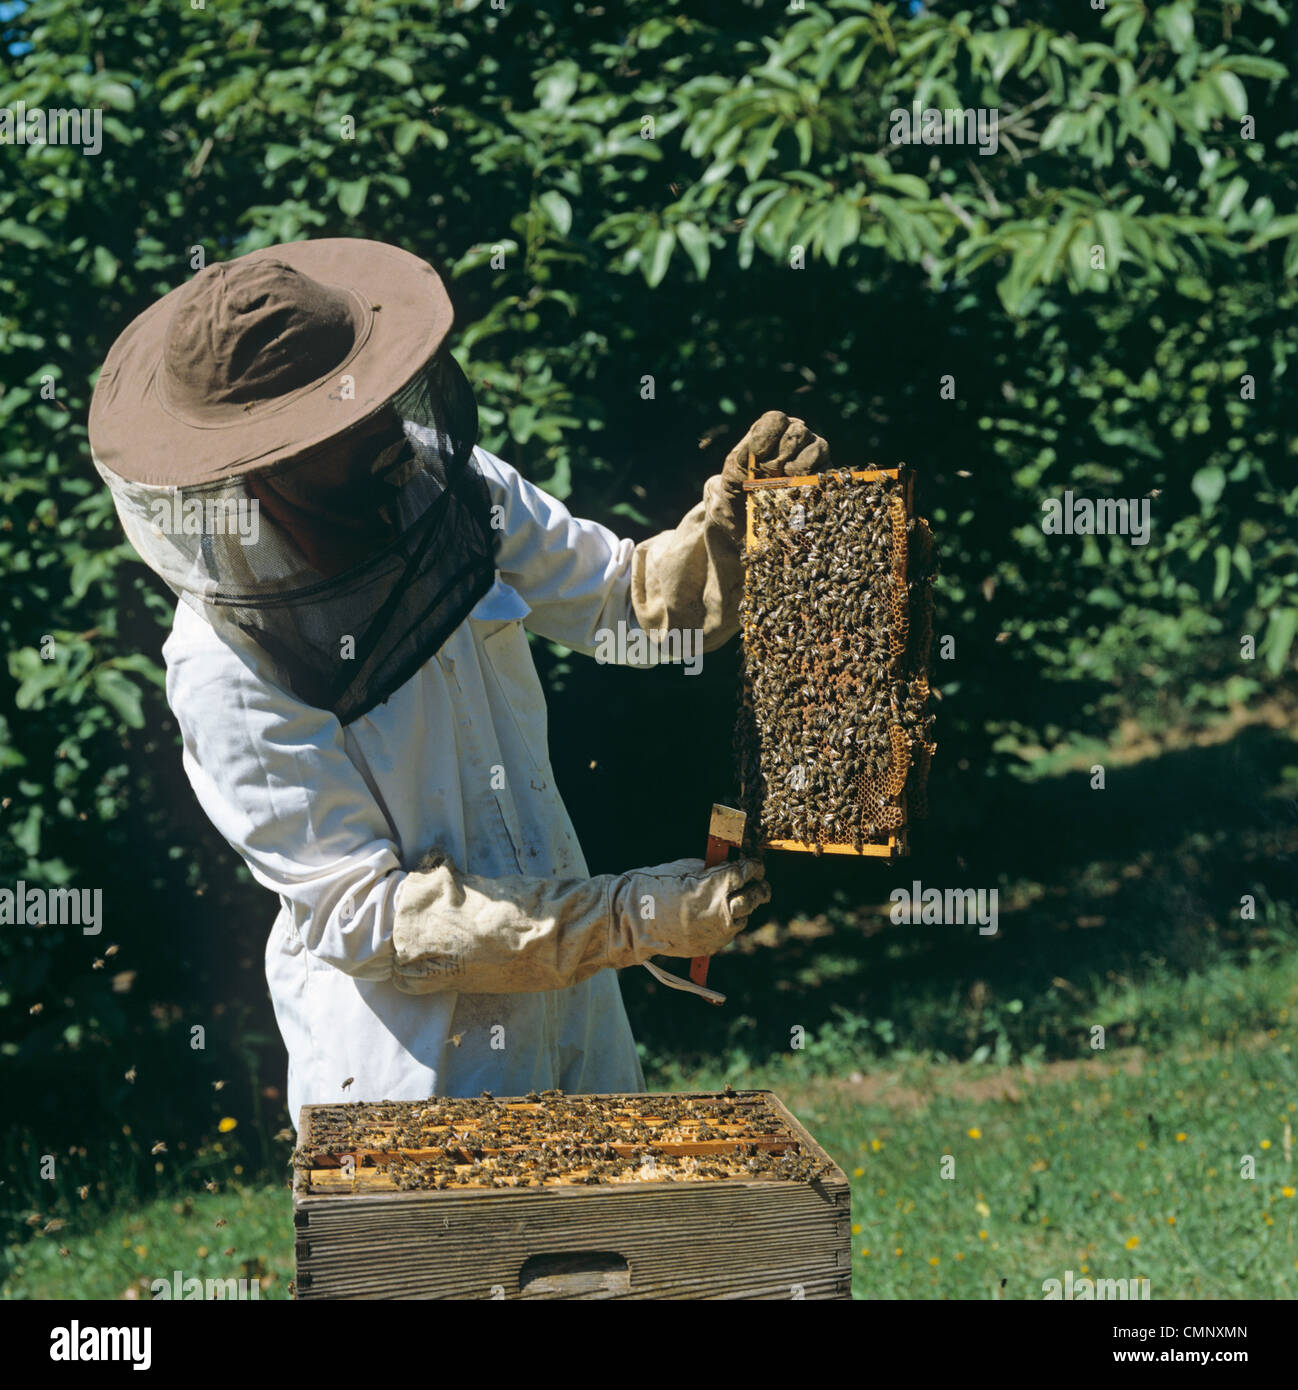 Beekeeper examining honey bee (Apis mellifera) brood frame from the hive - Stock Image